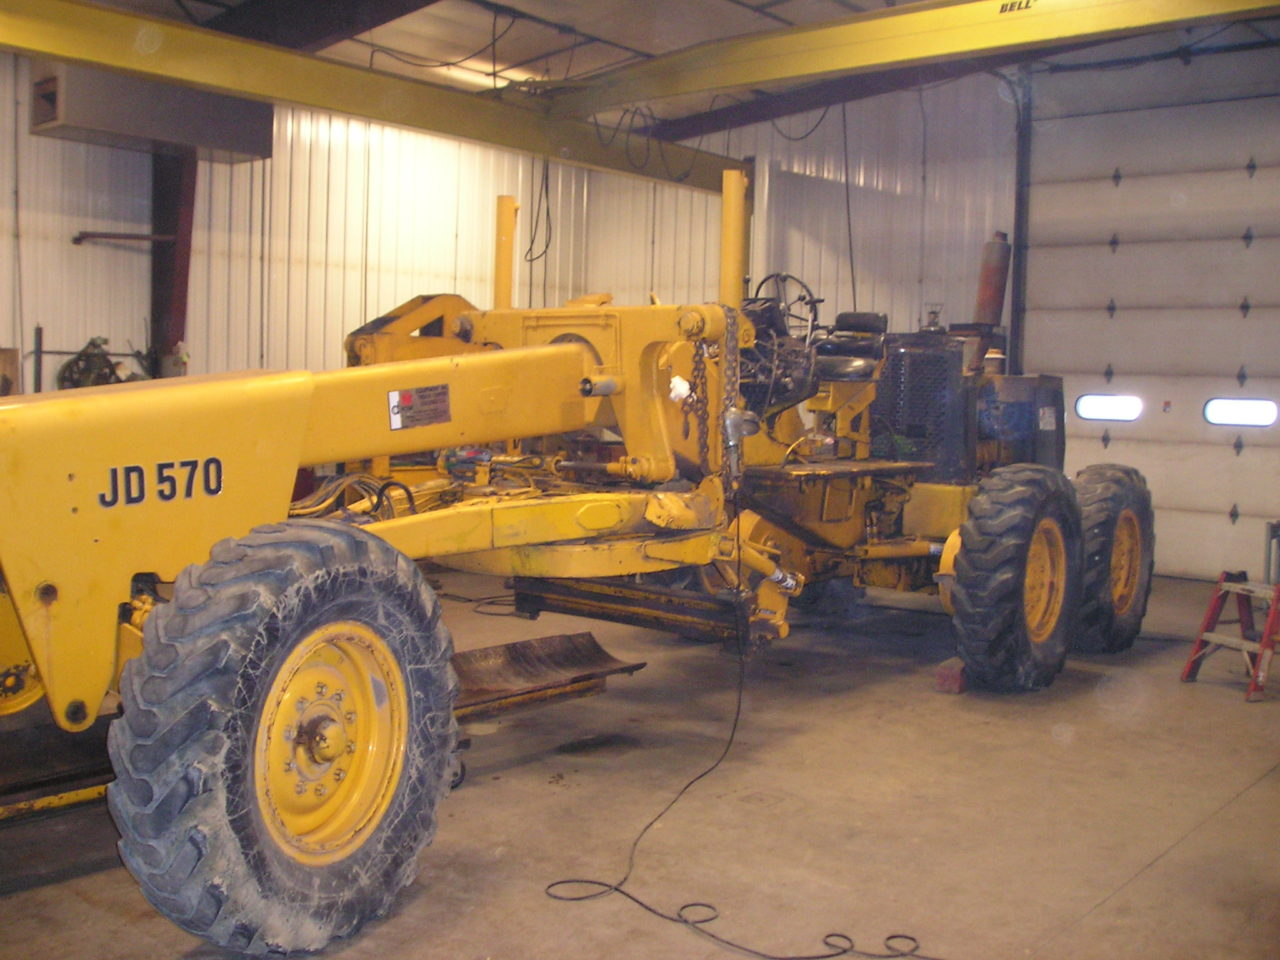 Don and Jerry spent a total of 2,200 hours from December 2014 to December  2015 restoring the JD570 Motor Grader.